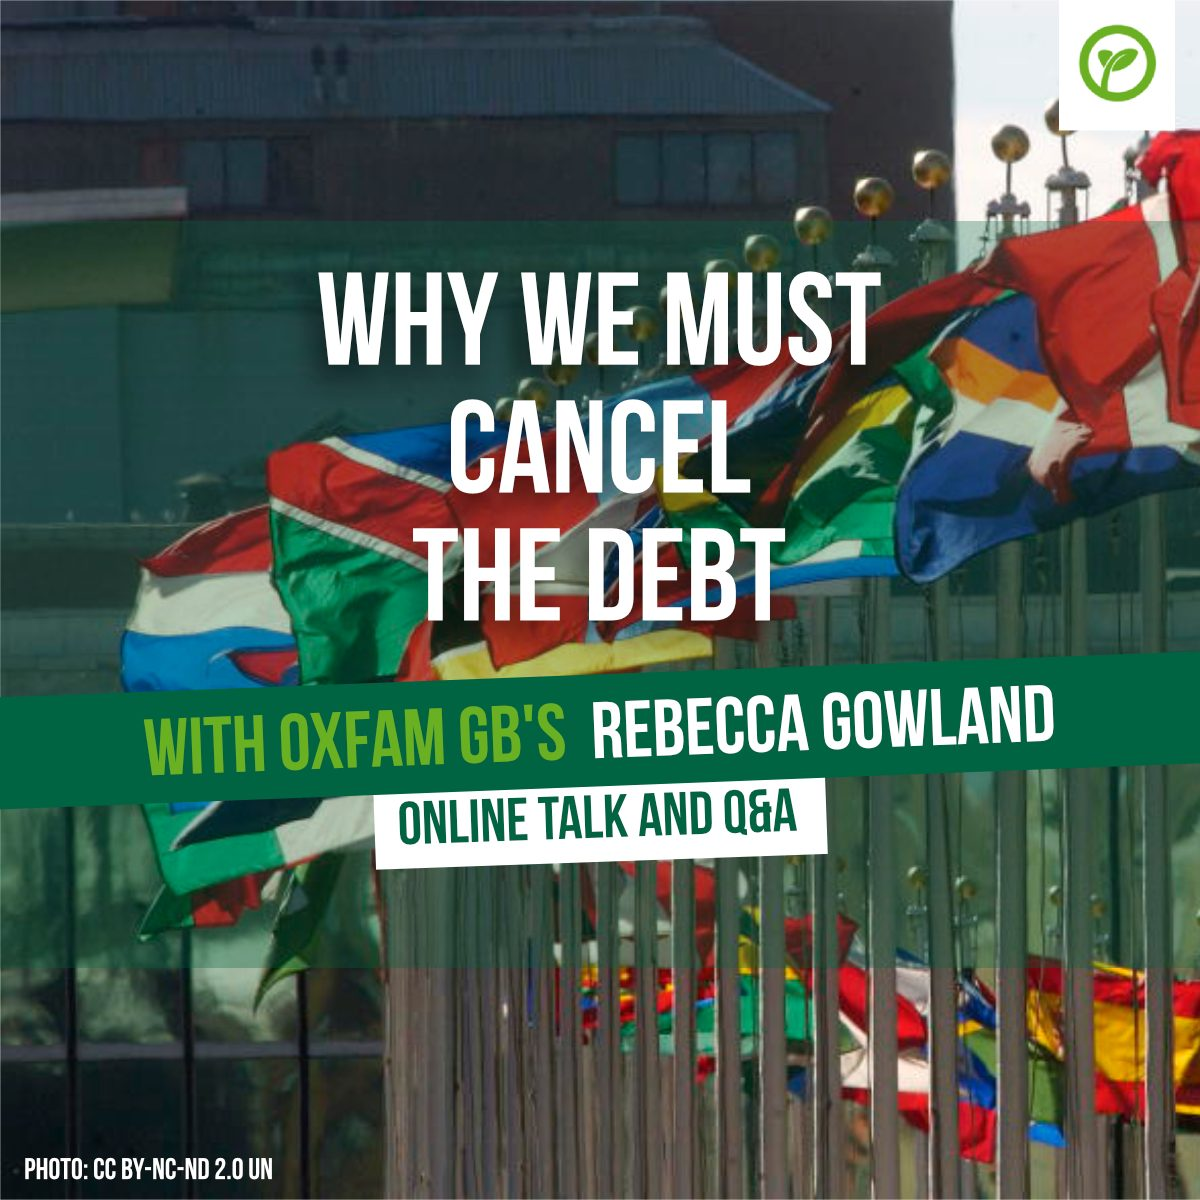 Why We Must Cancel the Debt. With Oxfam GB's Rebecca Gowland. Online talk and Q&A. Photo CC BY-NC-ND 2.0 UN